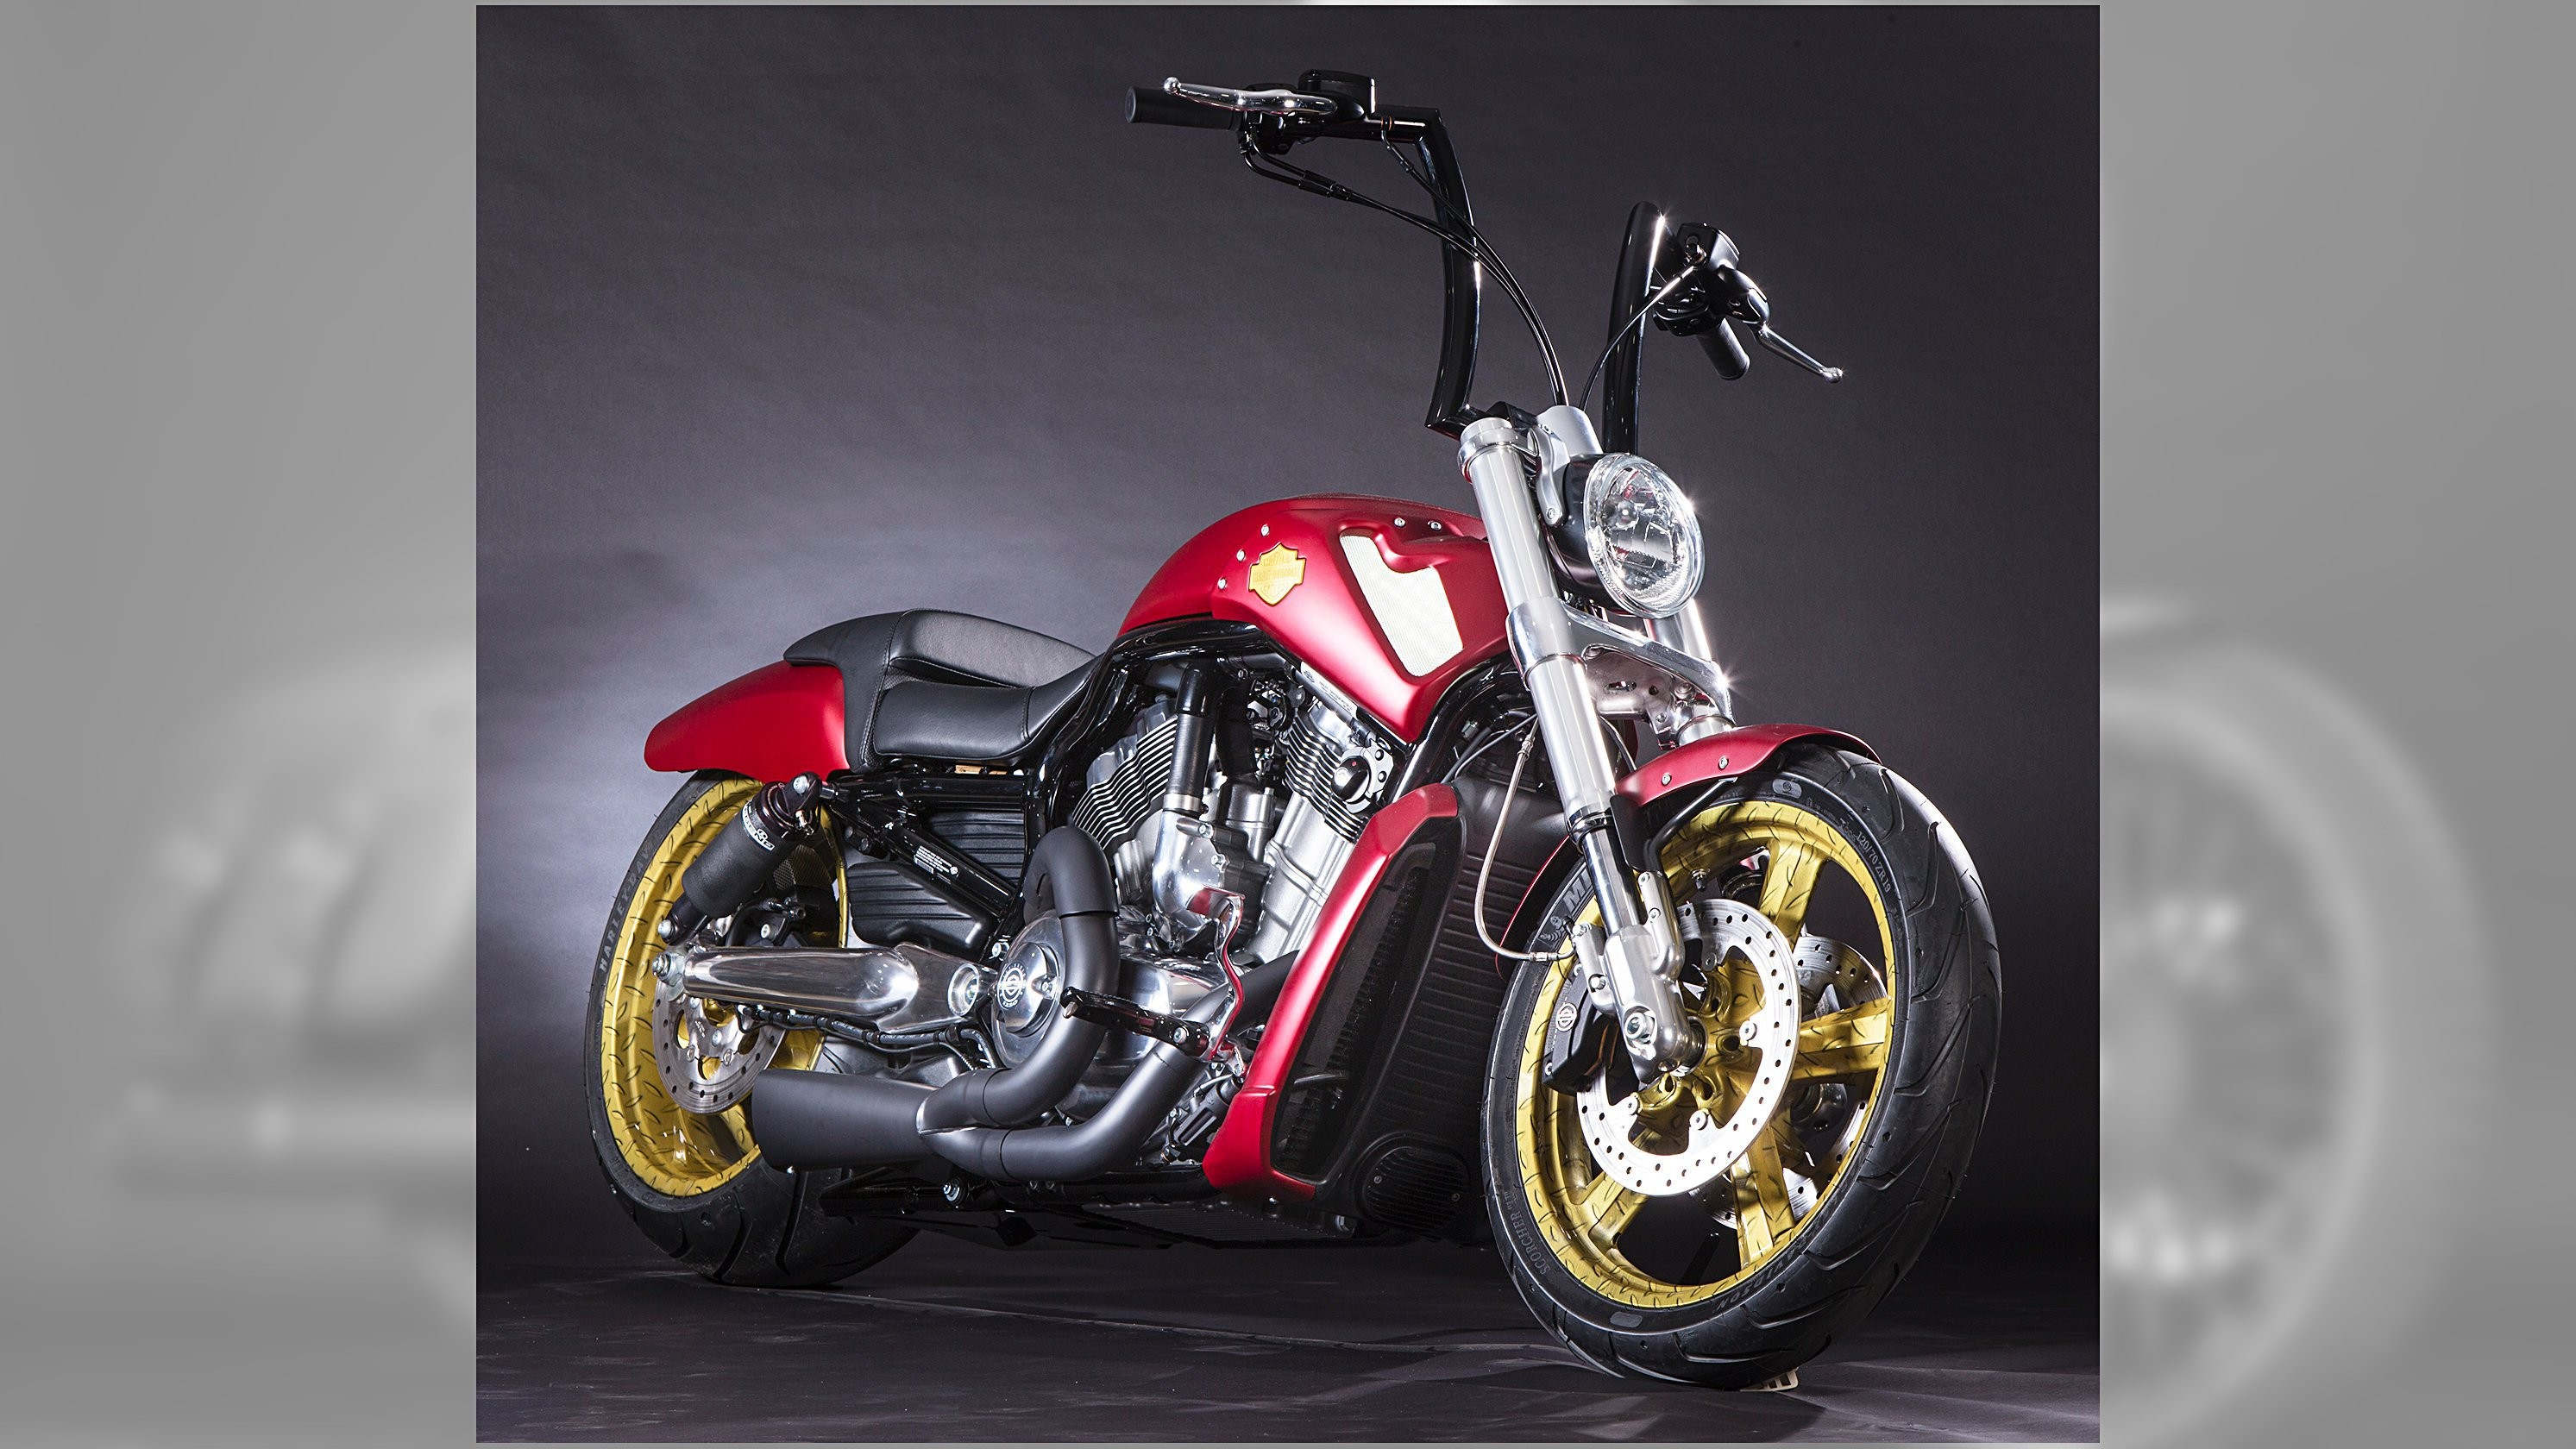 2986x1680 Iron 883 Wallpaper 2017 2018 Best Cars Reviews; These Custom Built, Marvel  Superhero Themed Harley; These Custom Built, Marvel Superhero Themed Harley